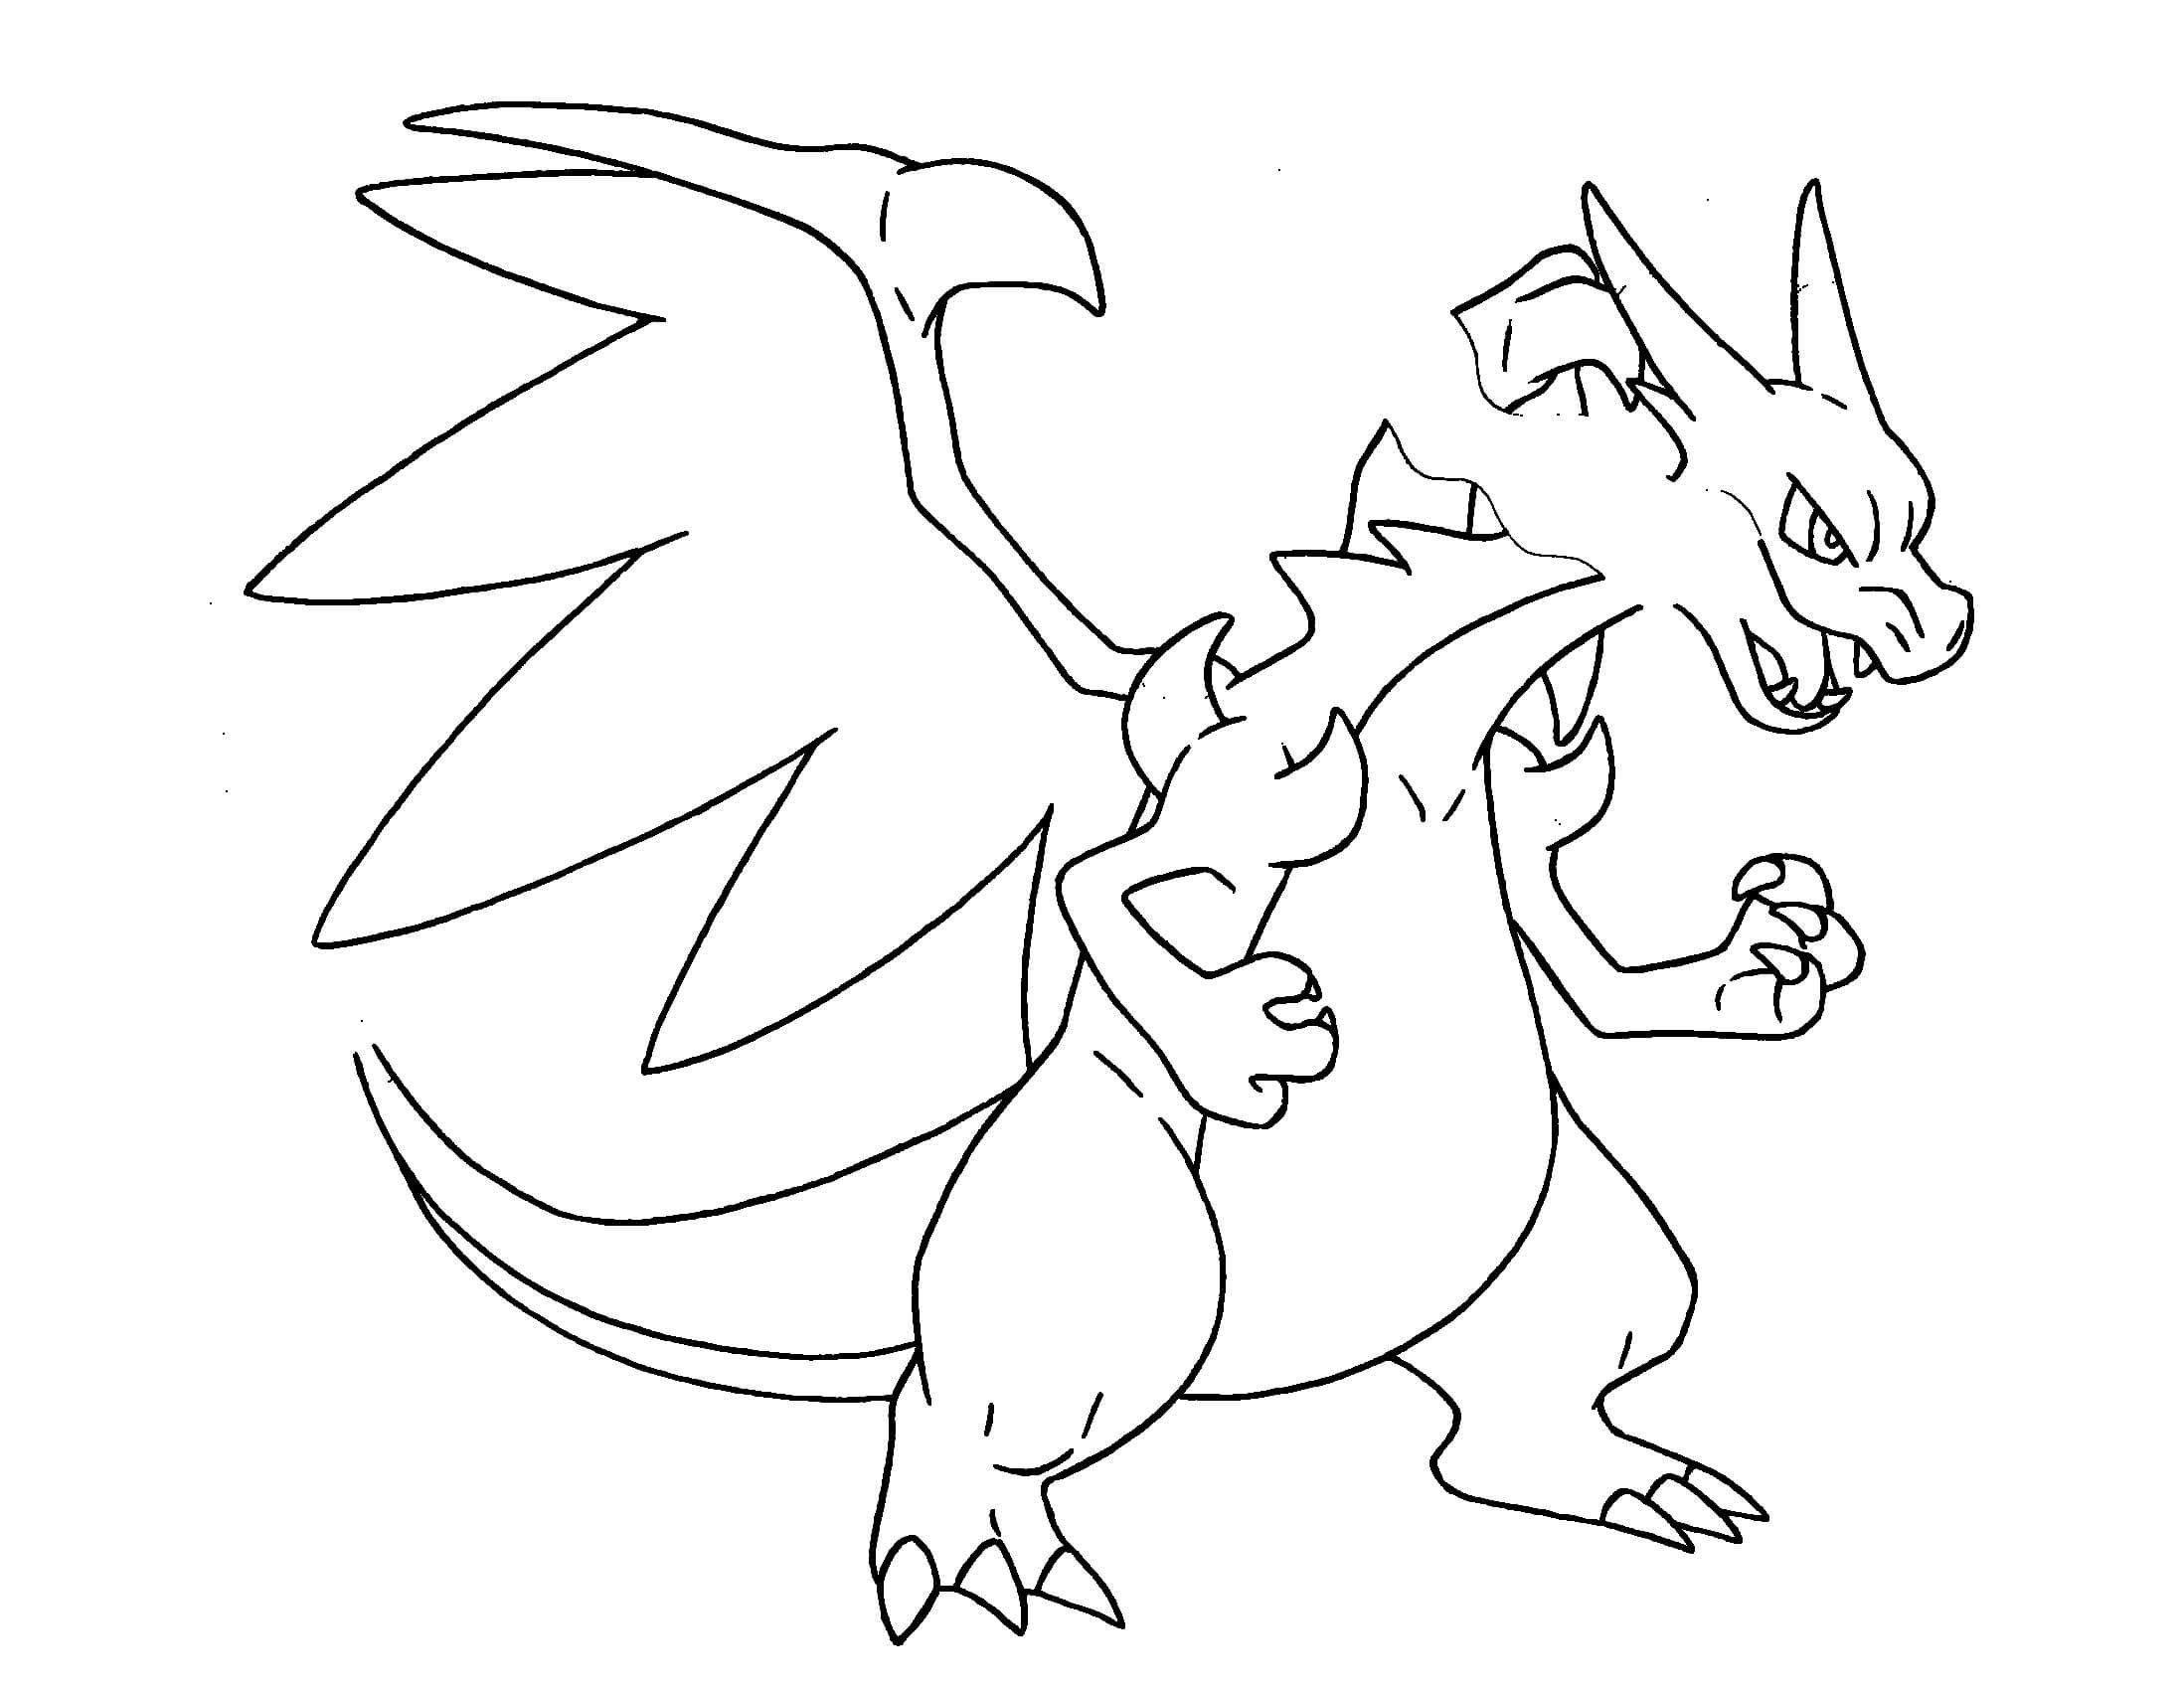 Legendary Pokemon Coloring Pages Luxury New Pokemon Mega Gengar Coloring Pages Lovespells Pokemon Coloring Pages Pokemon Coloring Sheets Pokemon Coloring